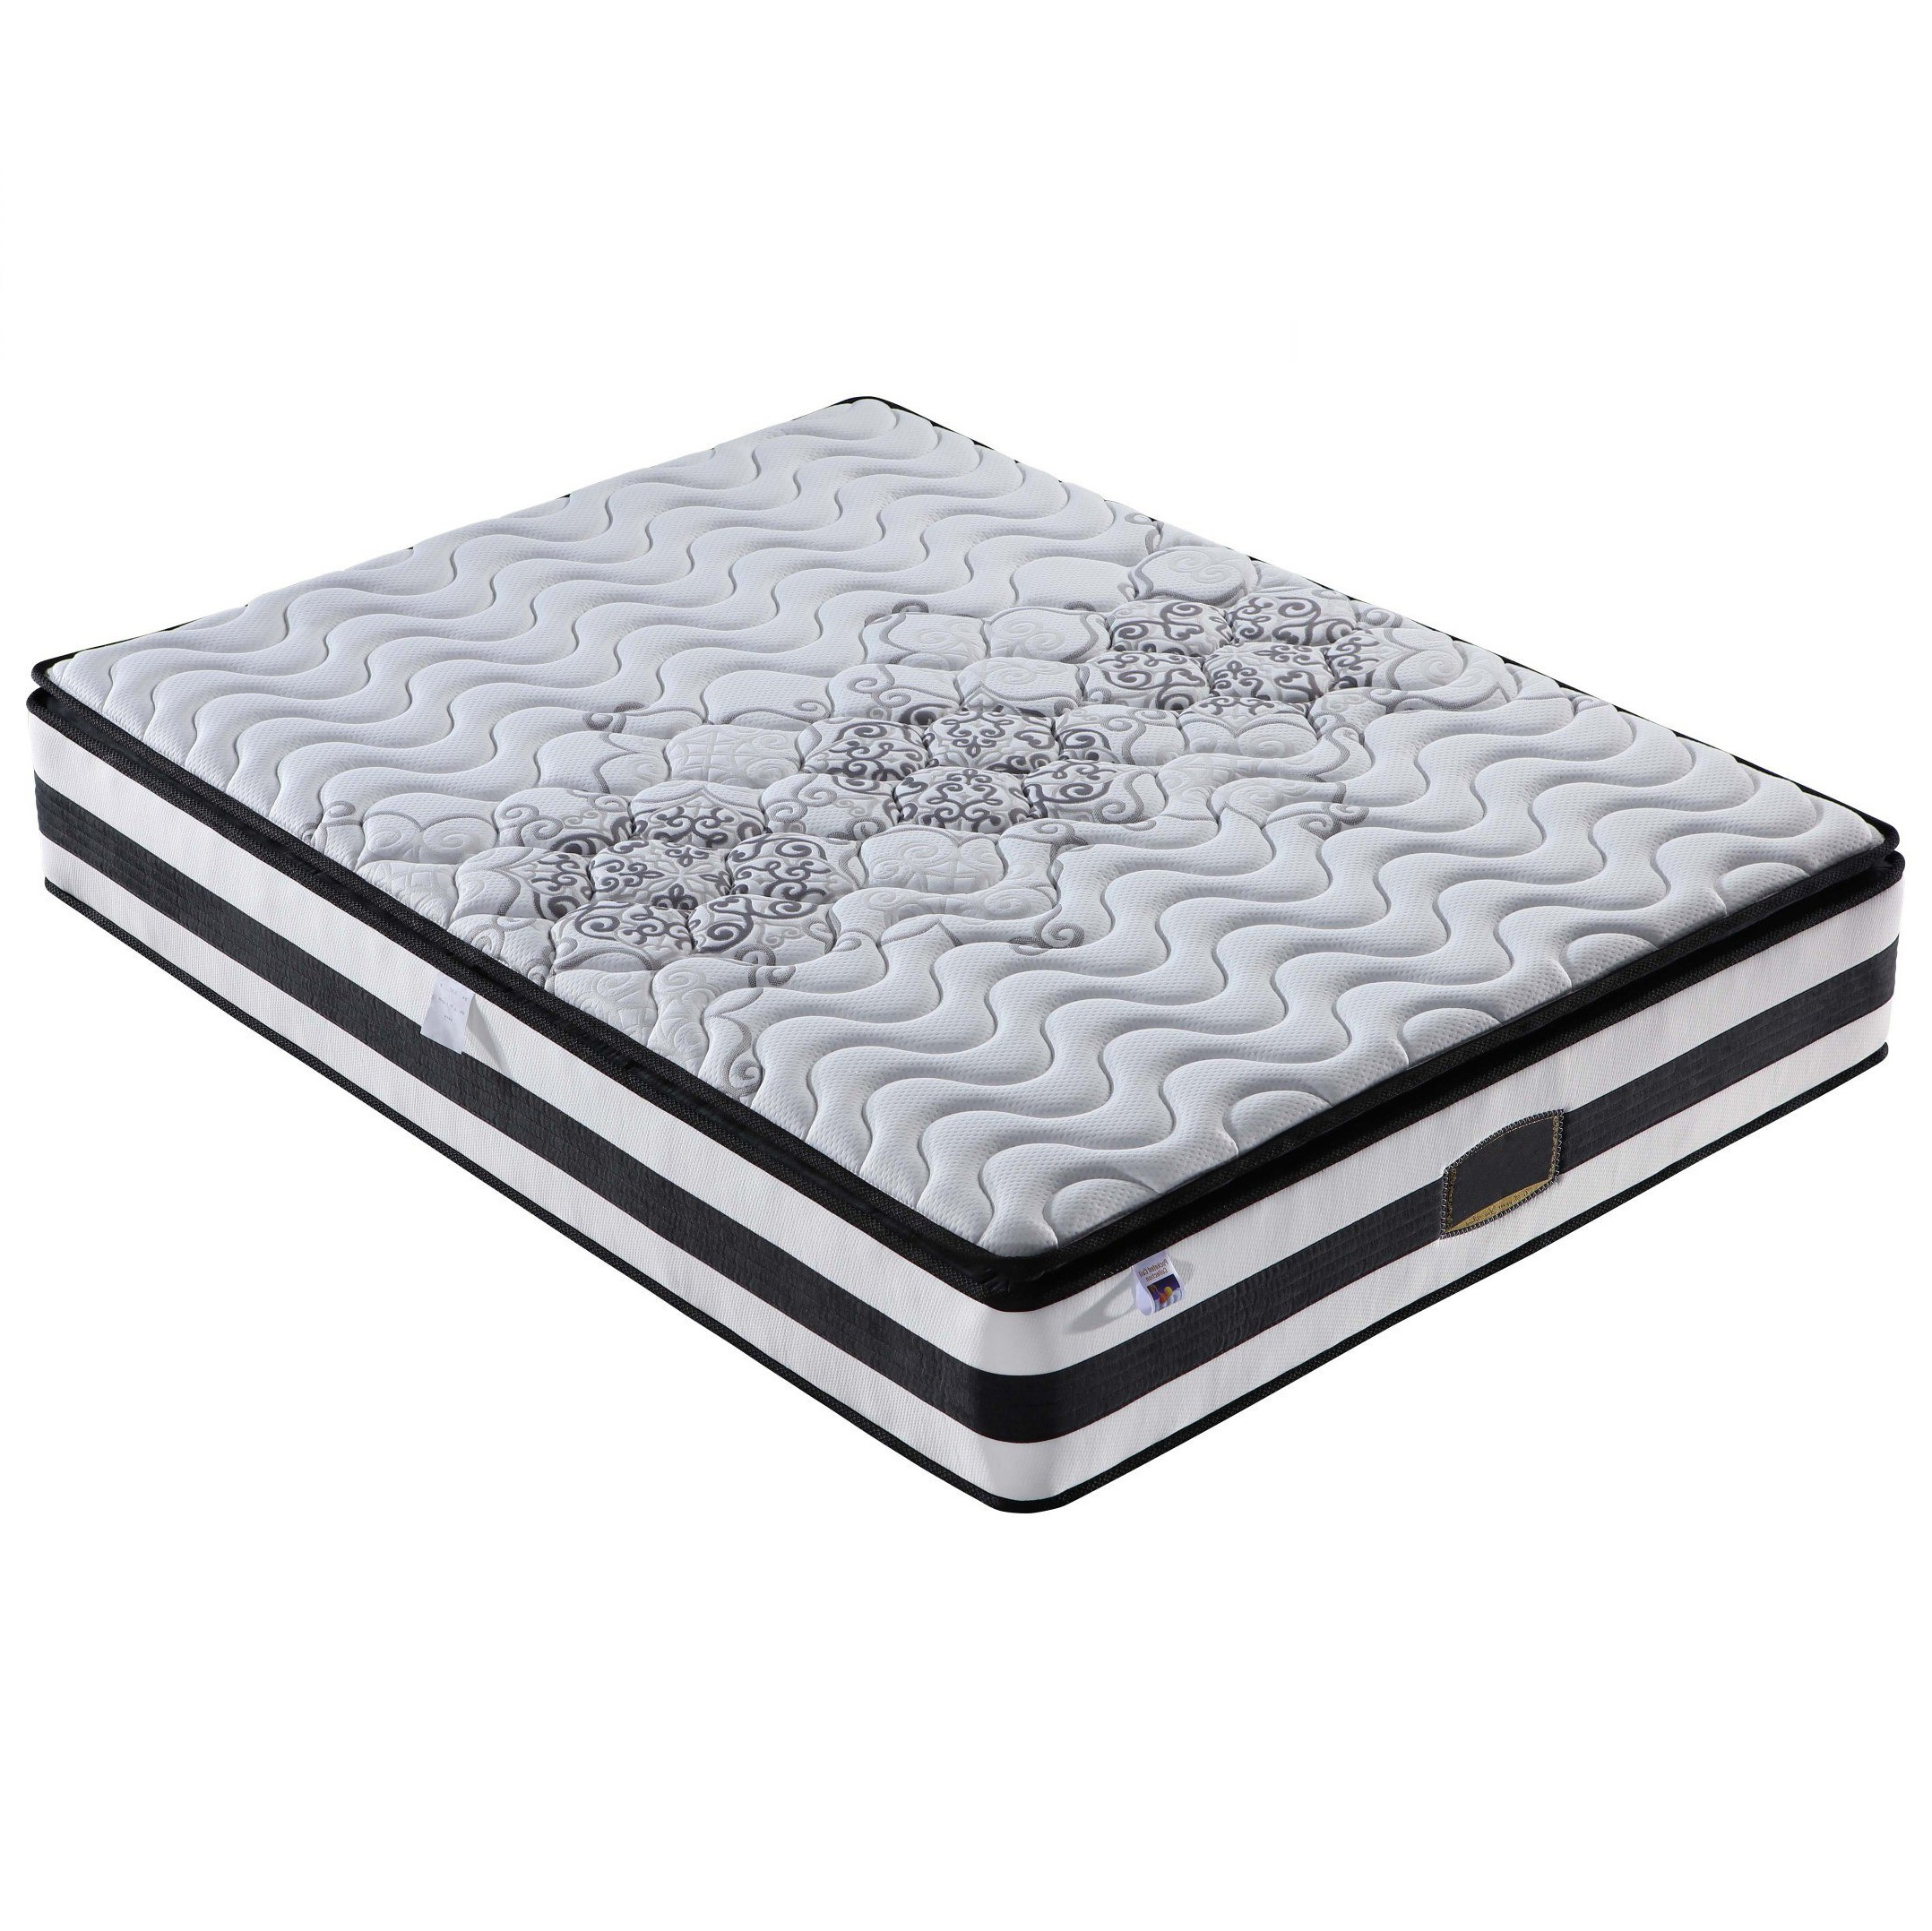 Customized Pocket Spring Pillow Top Mattress with Vacuum Packing in Pallet - Jozy Mattress | Jozy.net